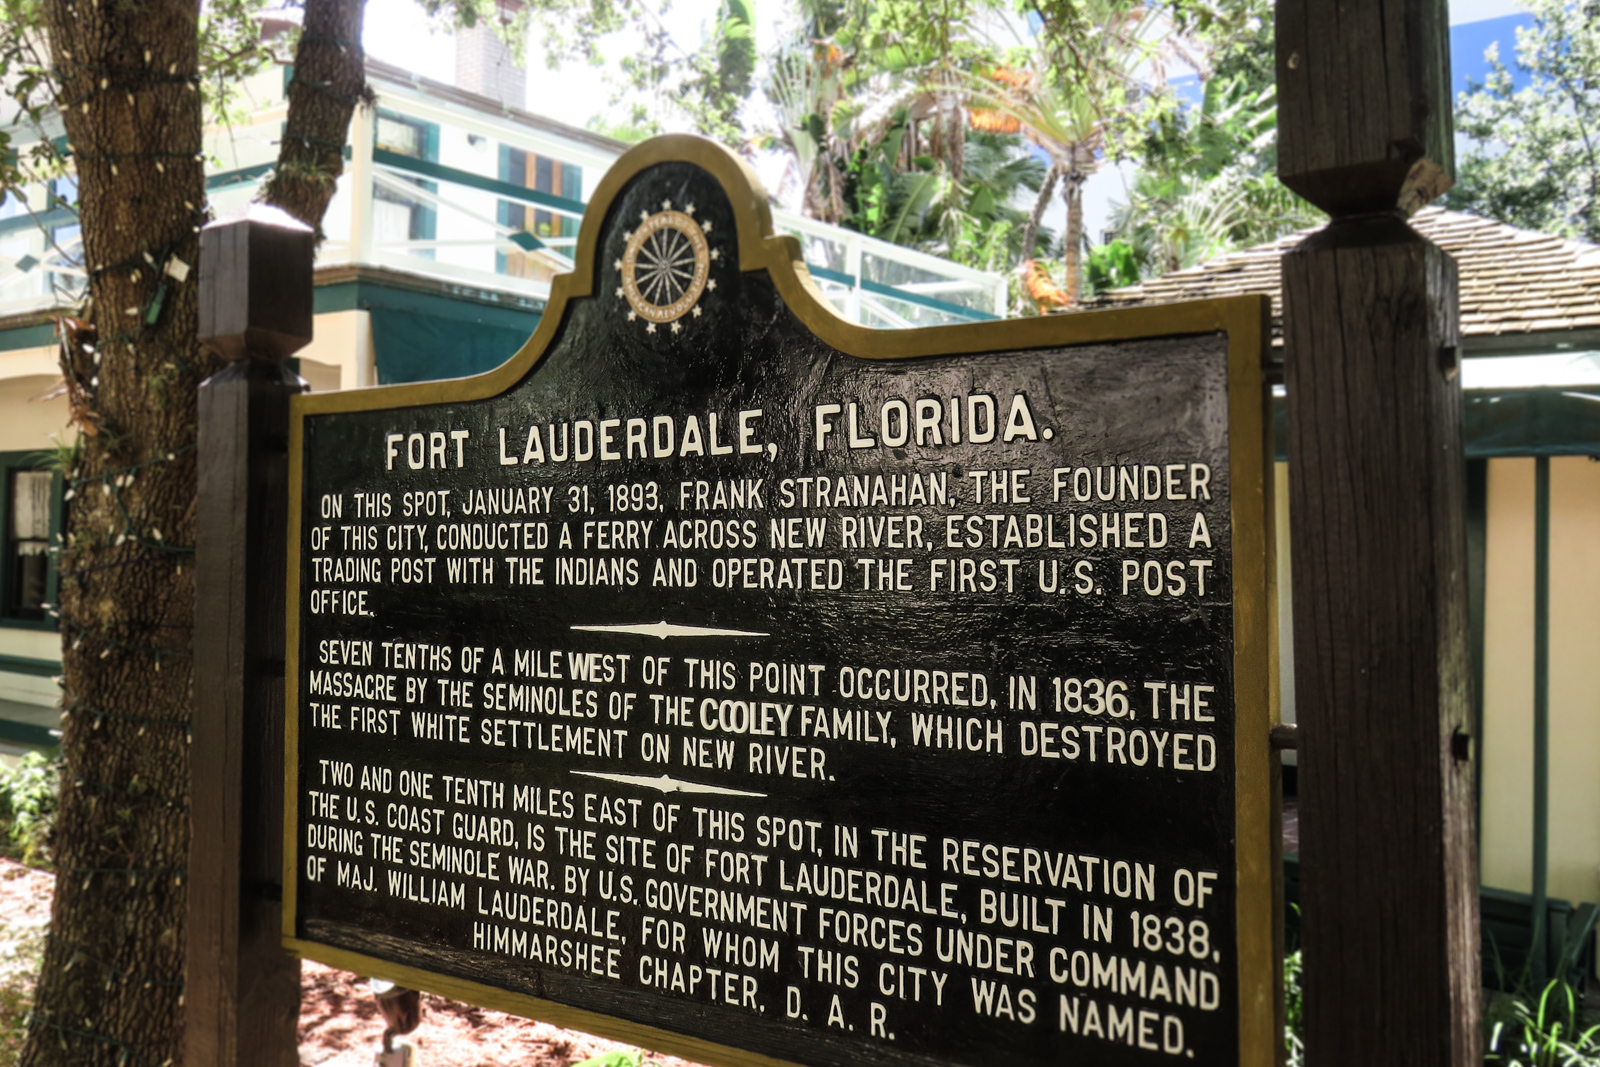 Top things to do in Fort Lauderdale Stranahan House, the original village of Fort Lauderdale. Originally the trading post and post office for Fort Lauderdale village. One of the top Fort Lauderdale attractions.